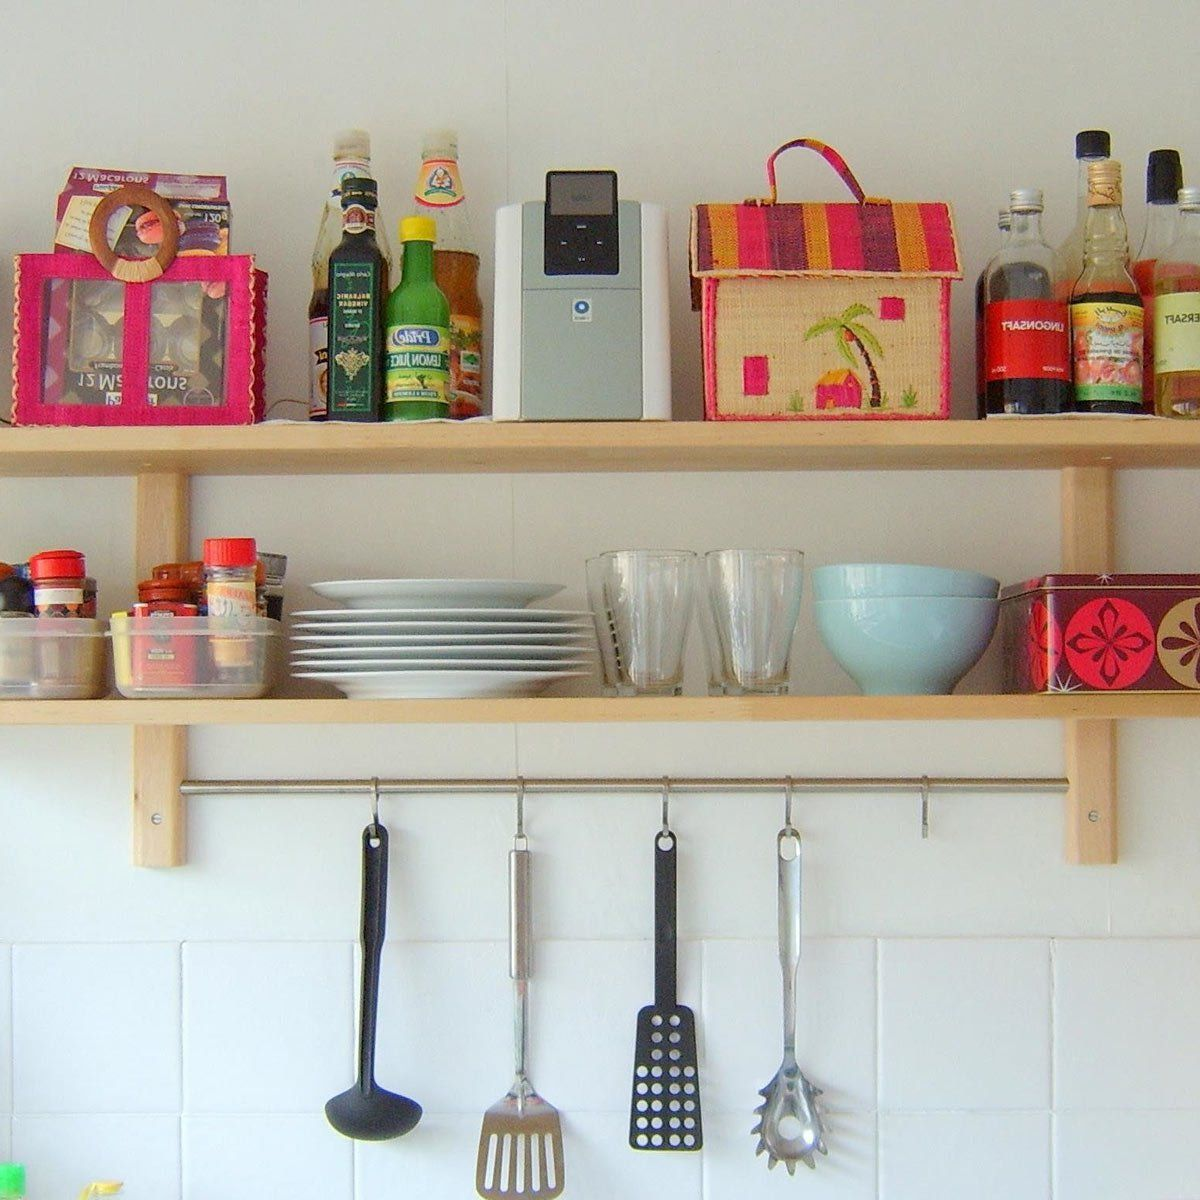 Ikea Küche Organisation 11 Ideas For Organizing Your Kitchen Organization Tips